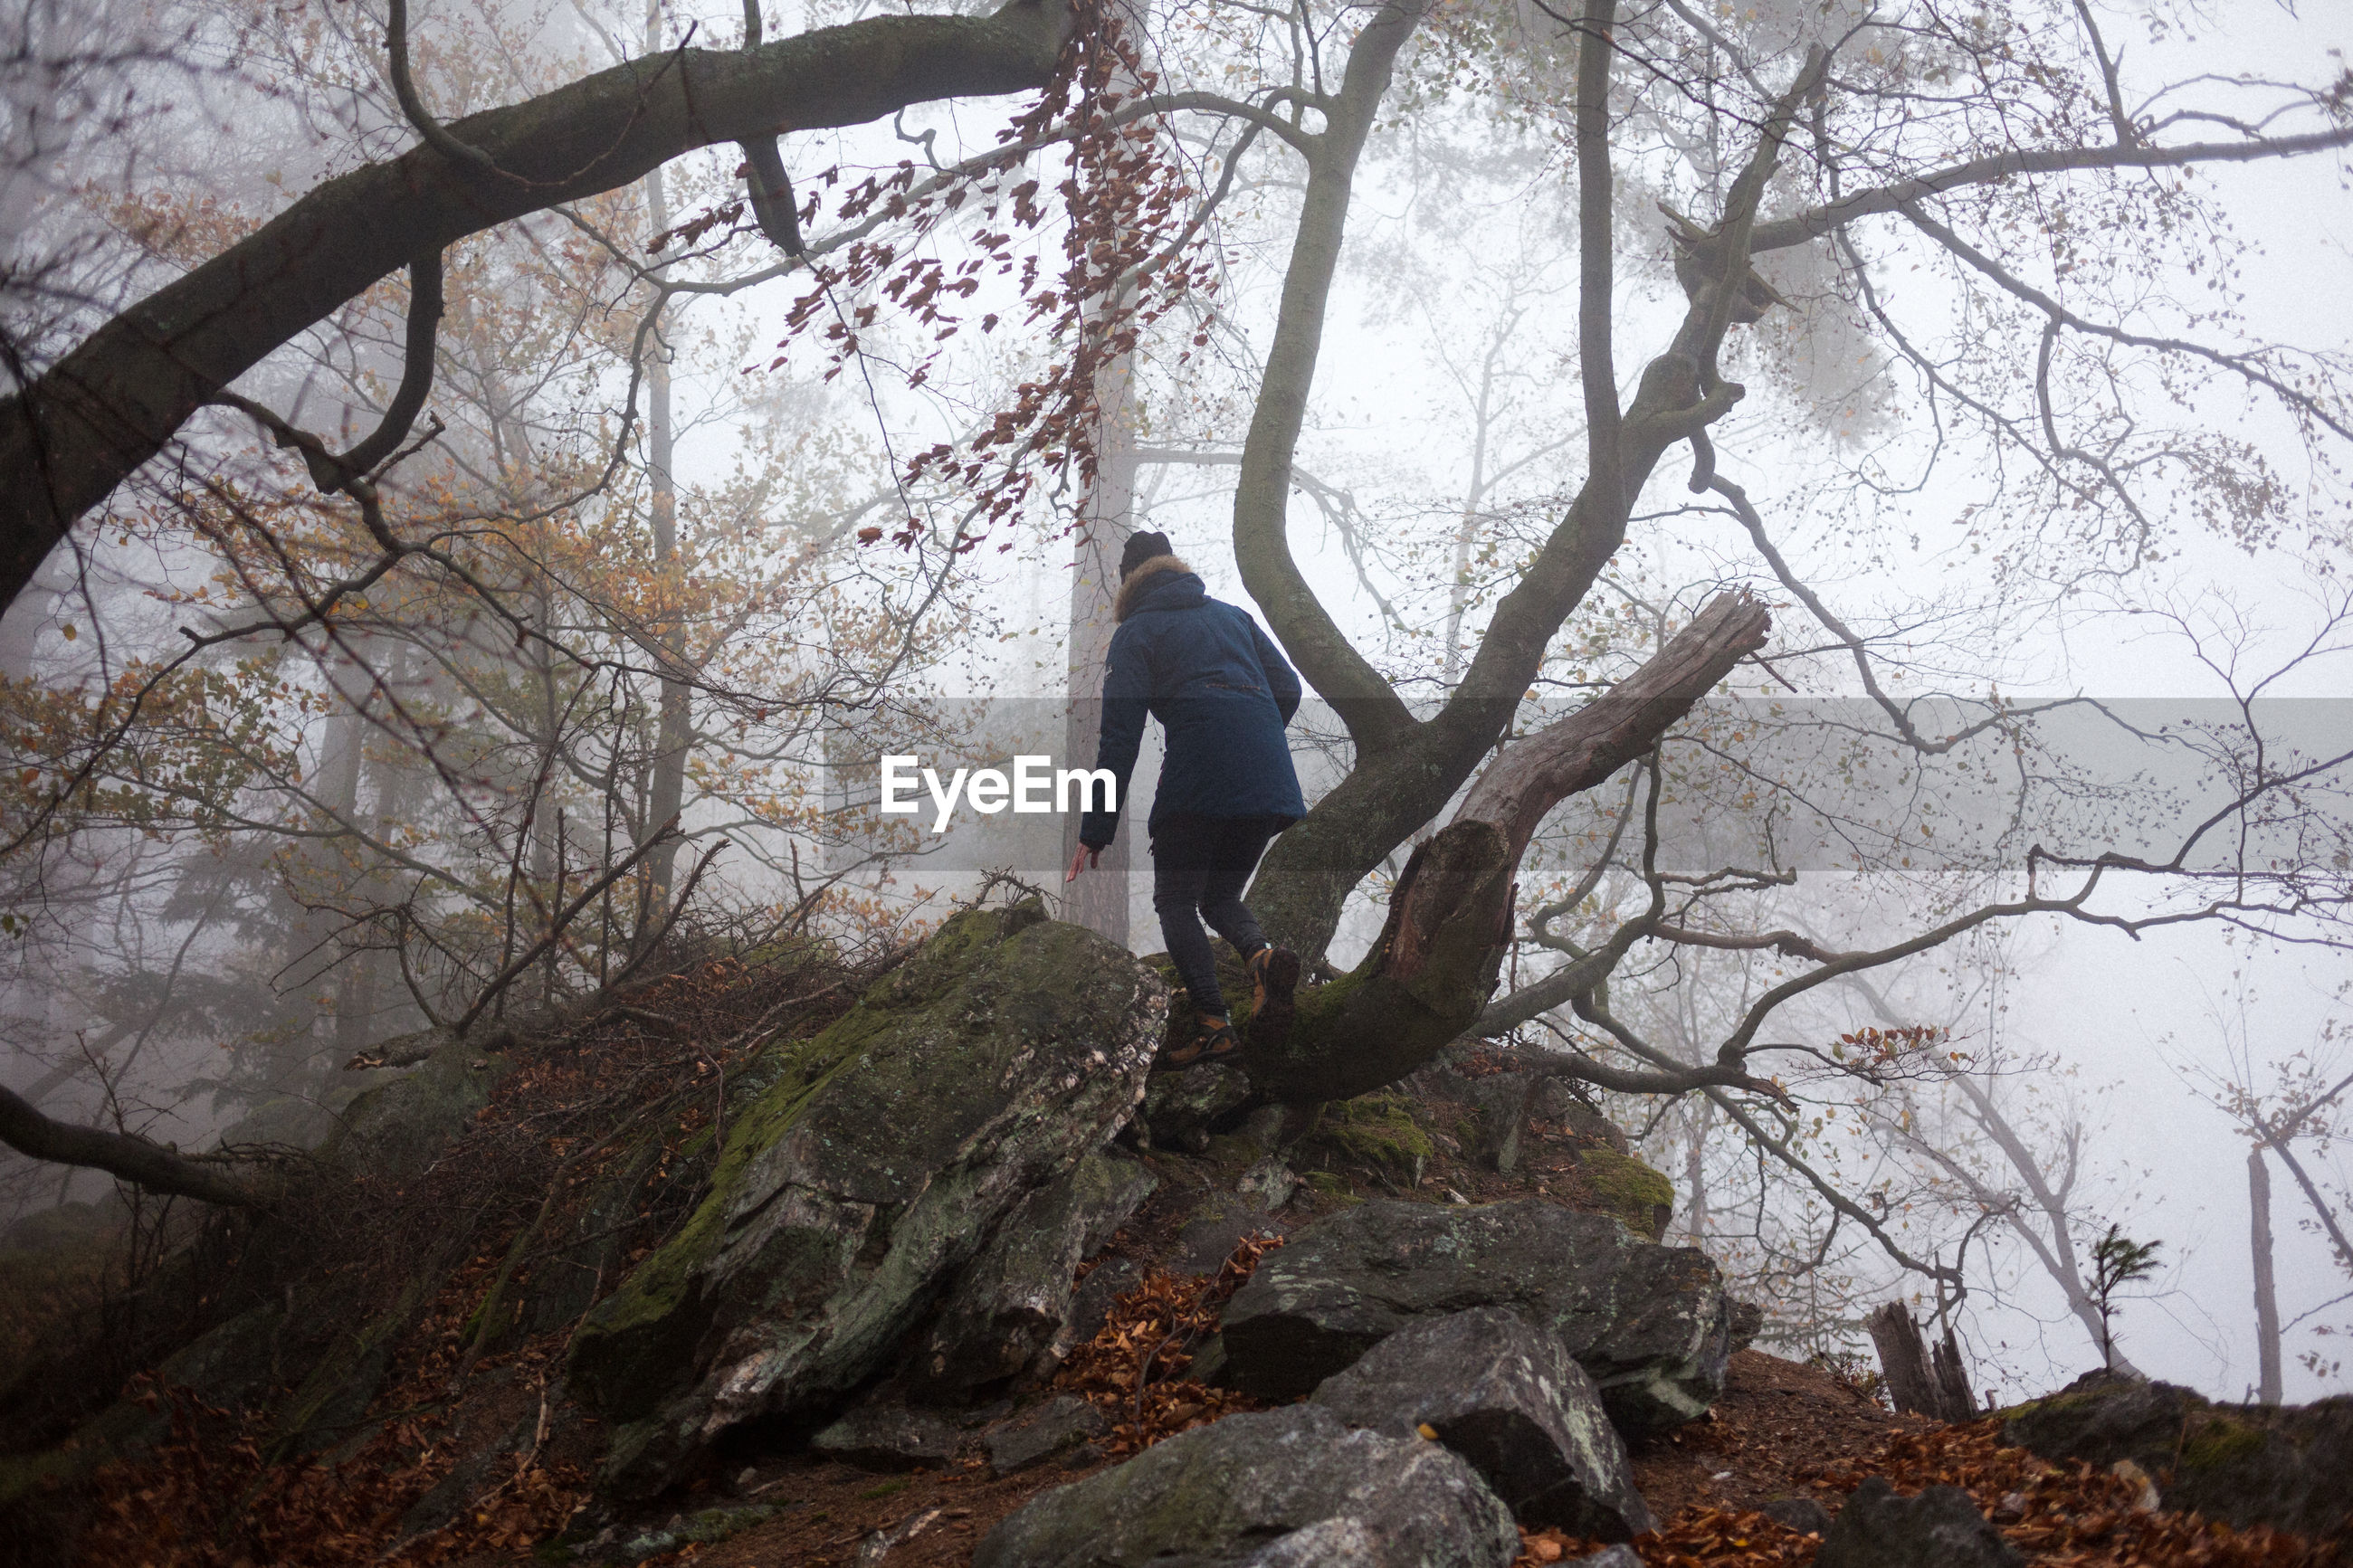 Rear view of woman standing on tree at forest during foggy weather